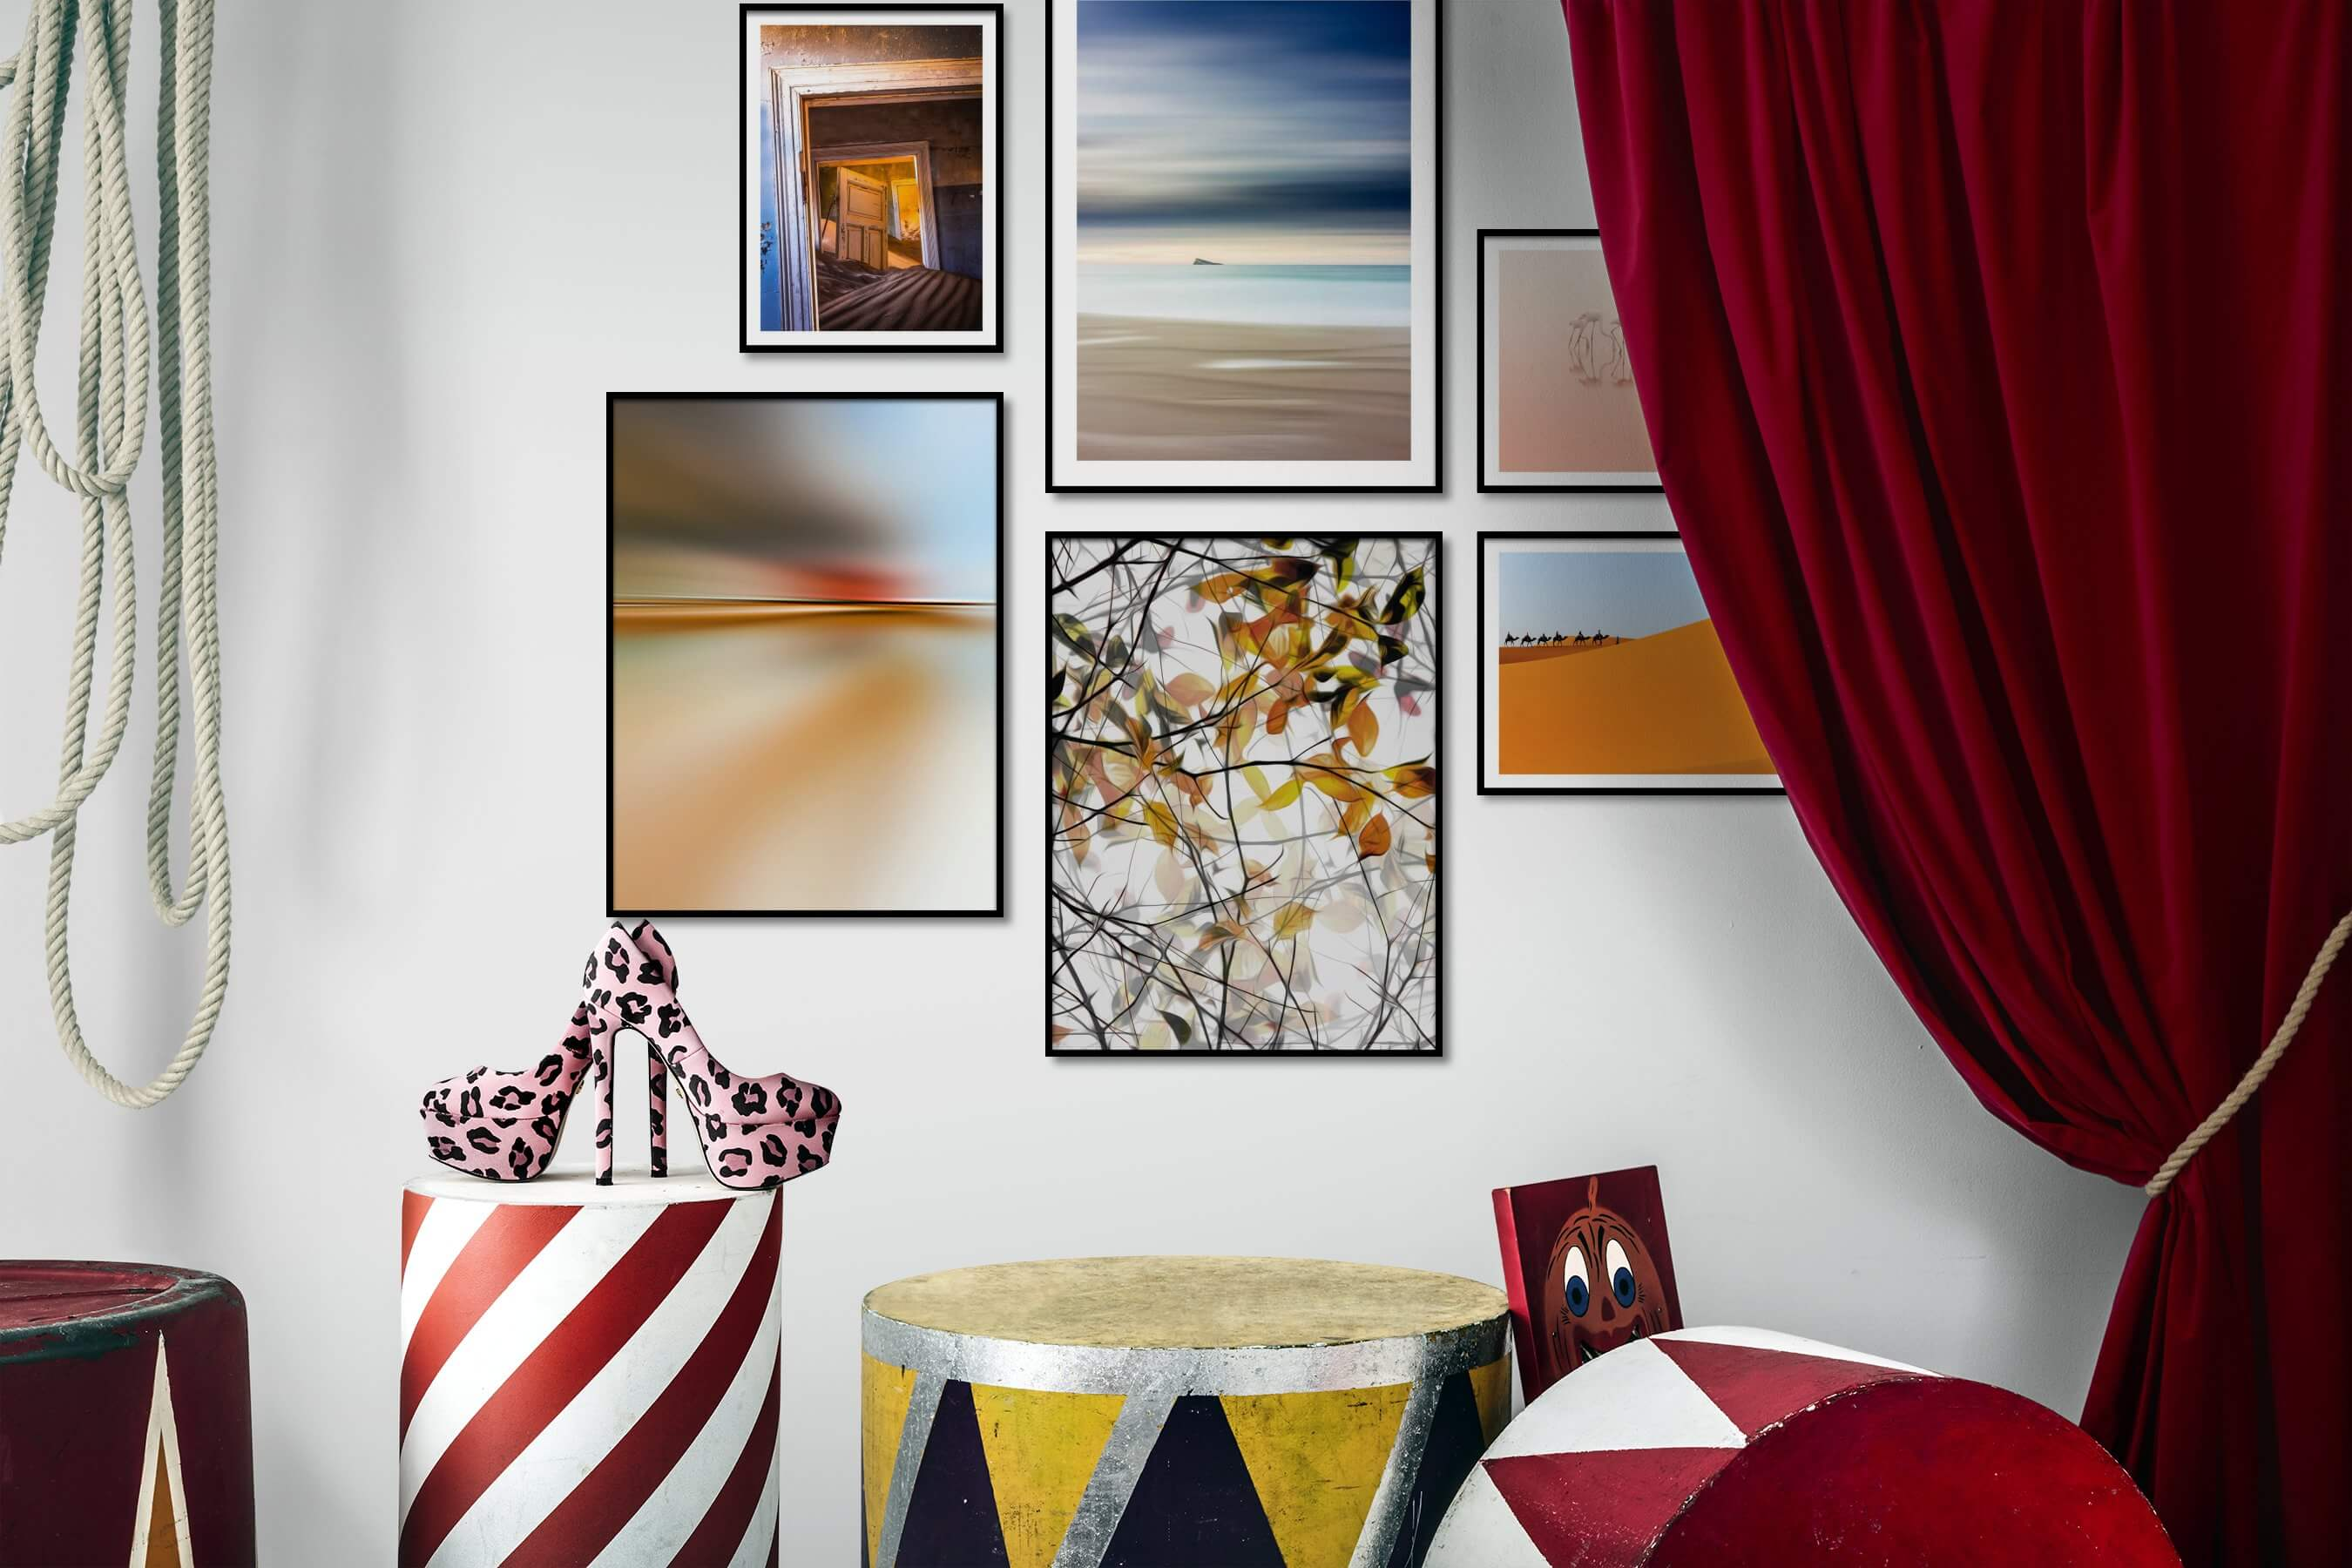 Gallery wall idea with six framed pictures arranged on a wall depicting Vintage, Beach & Water, For the Minimalist, For the Moderate, Flowers & Plants, Animals, and Nature